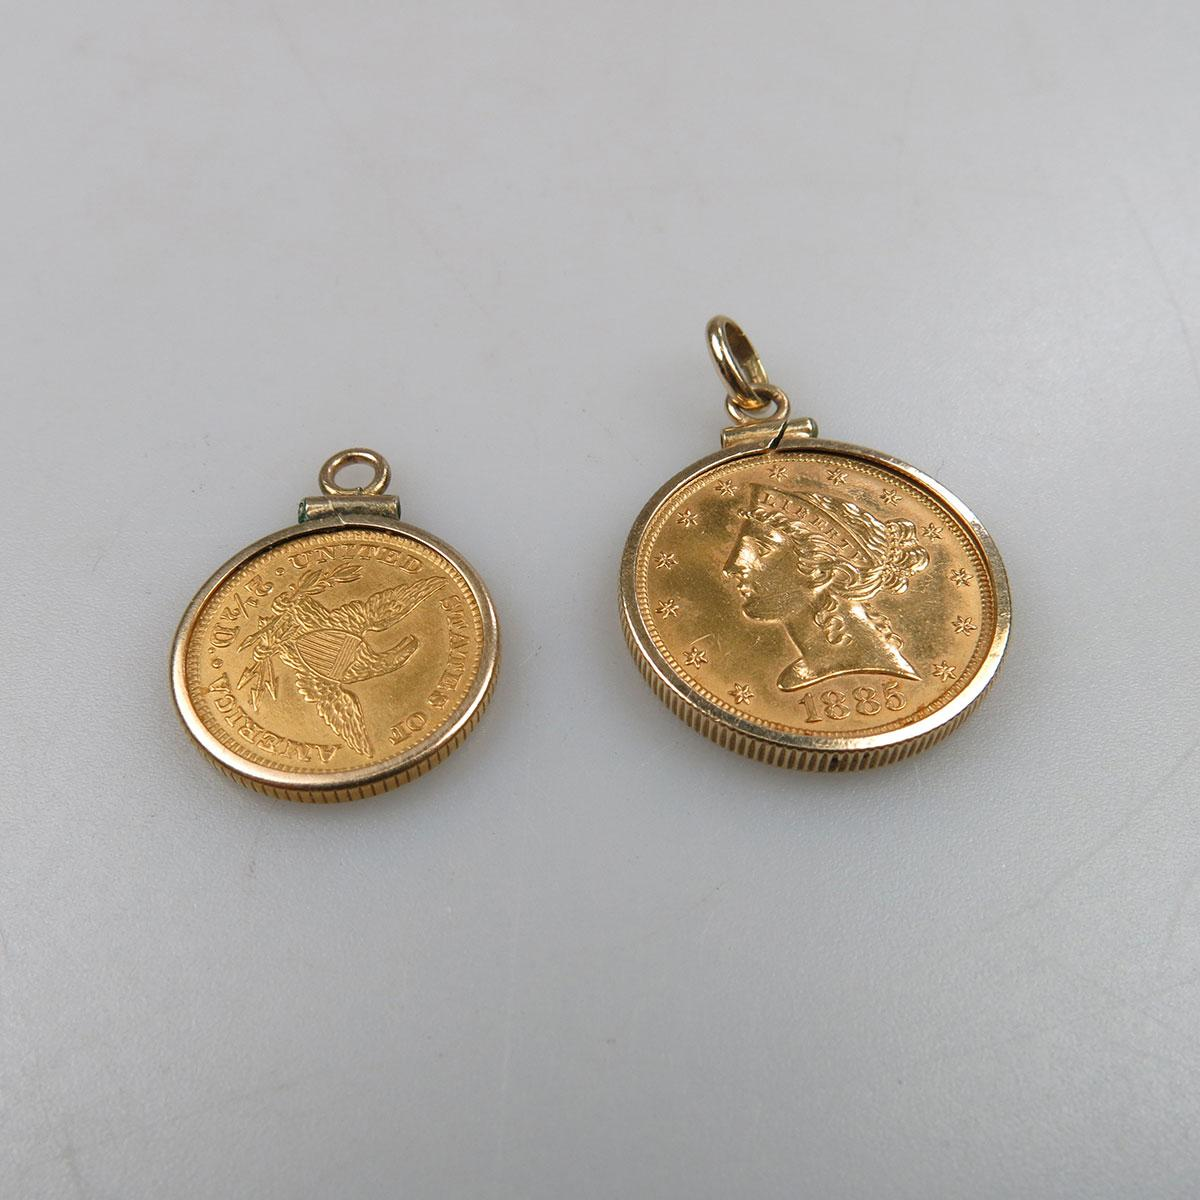 American $5 Gold Coin (1885) & an American $2 1/2 Gold Coin (1889)